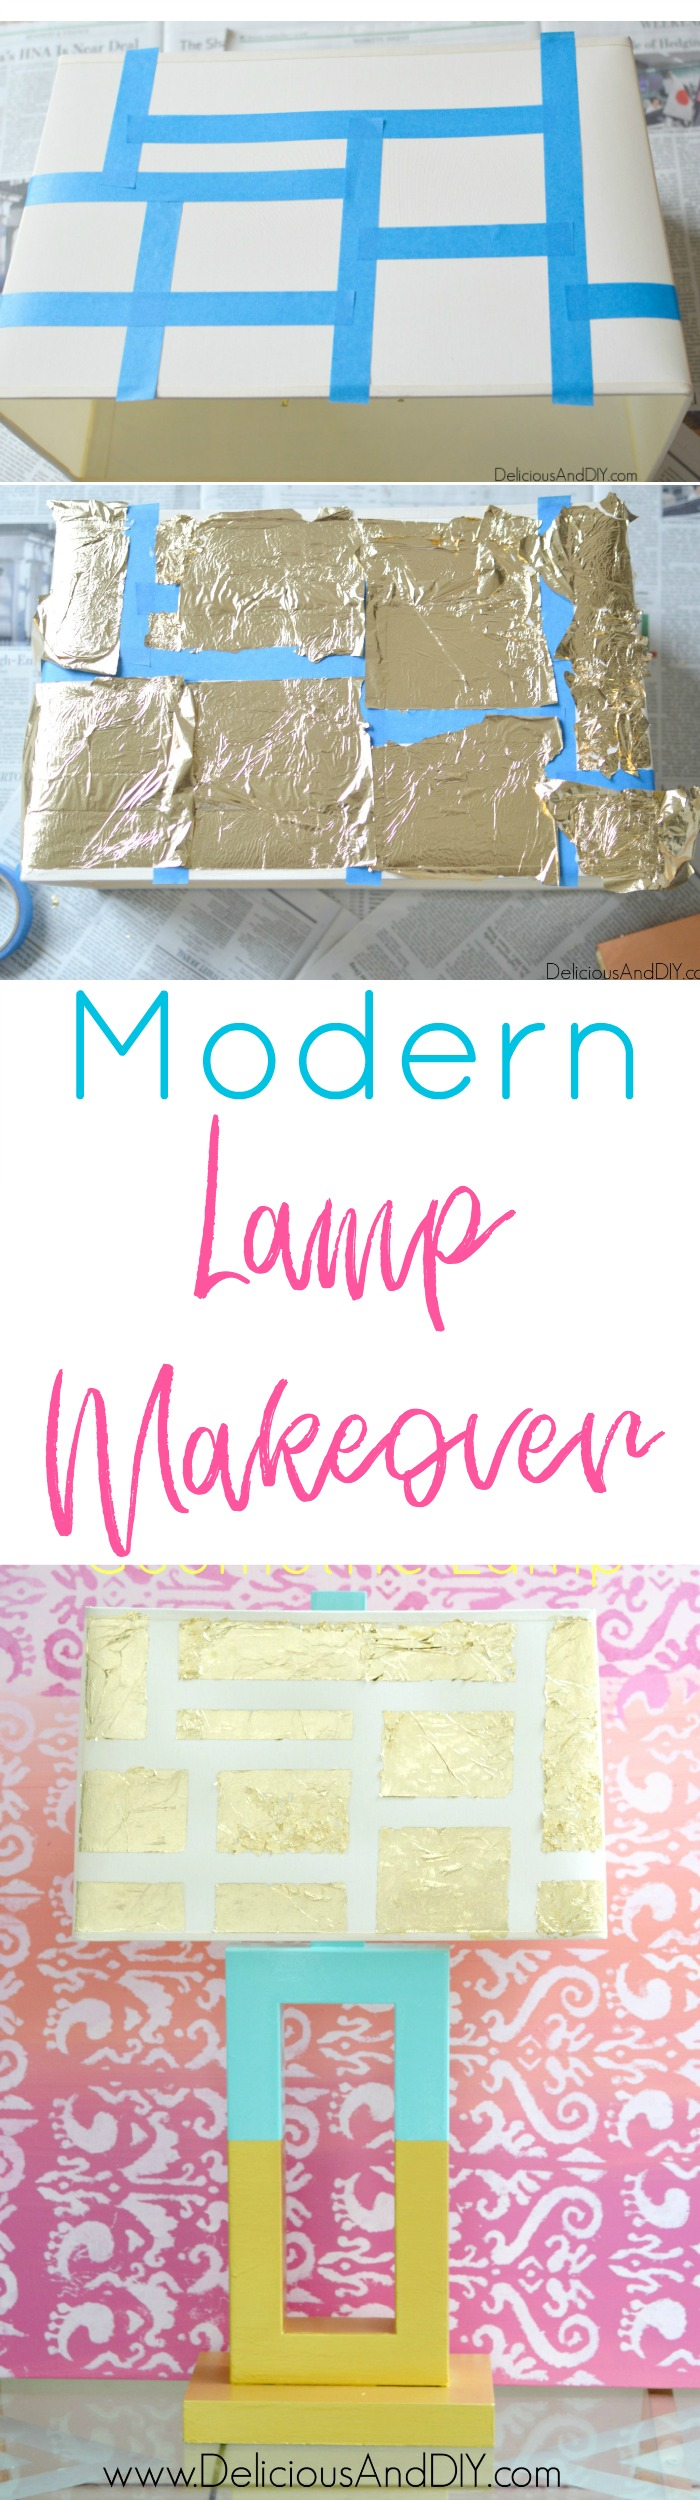 Give an old lamp a modern makeover using just a few simple supplies| Gold Leaf Lampshade Makeover| Lamp Update Ideas| Geometric Lamp Makeover| Masking Tape Projects| DIY Lamp Ideas